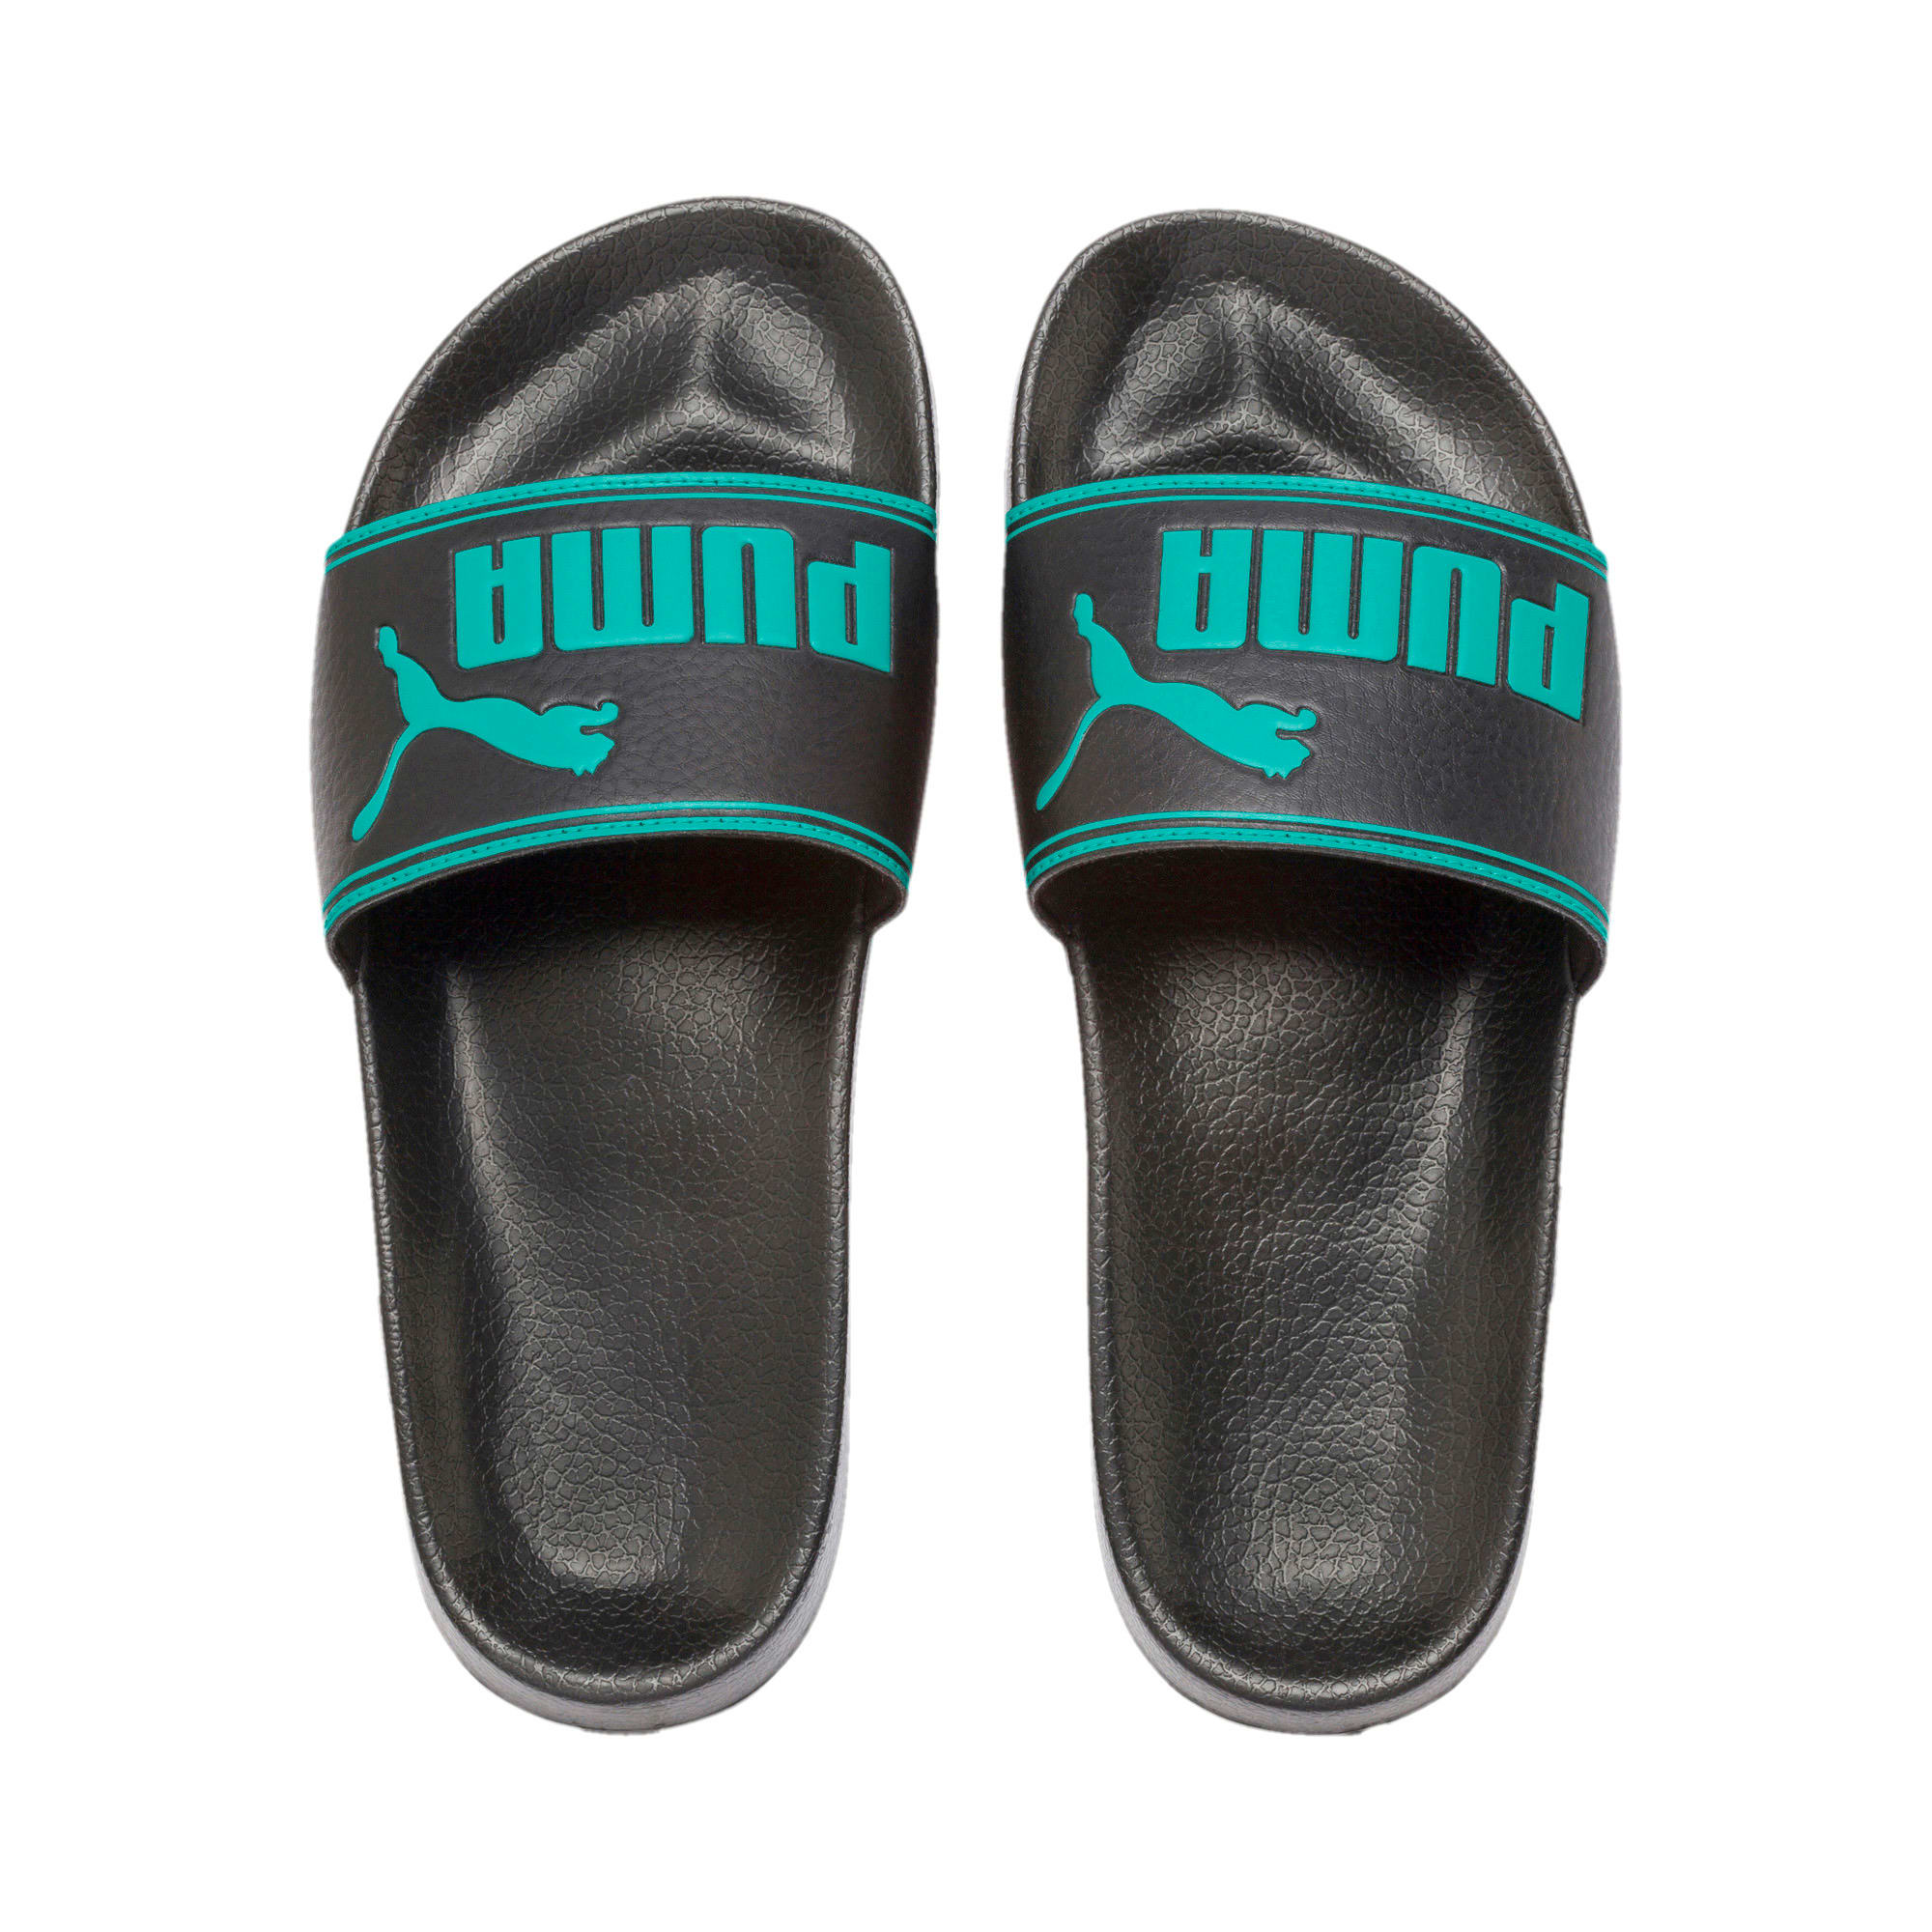 Thumbnail 6 of Leadcat Sandals, Puma Black-Blue Turquoise, medium